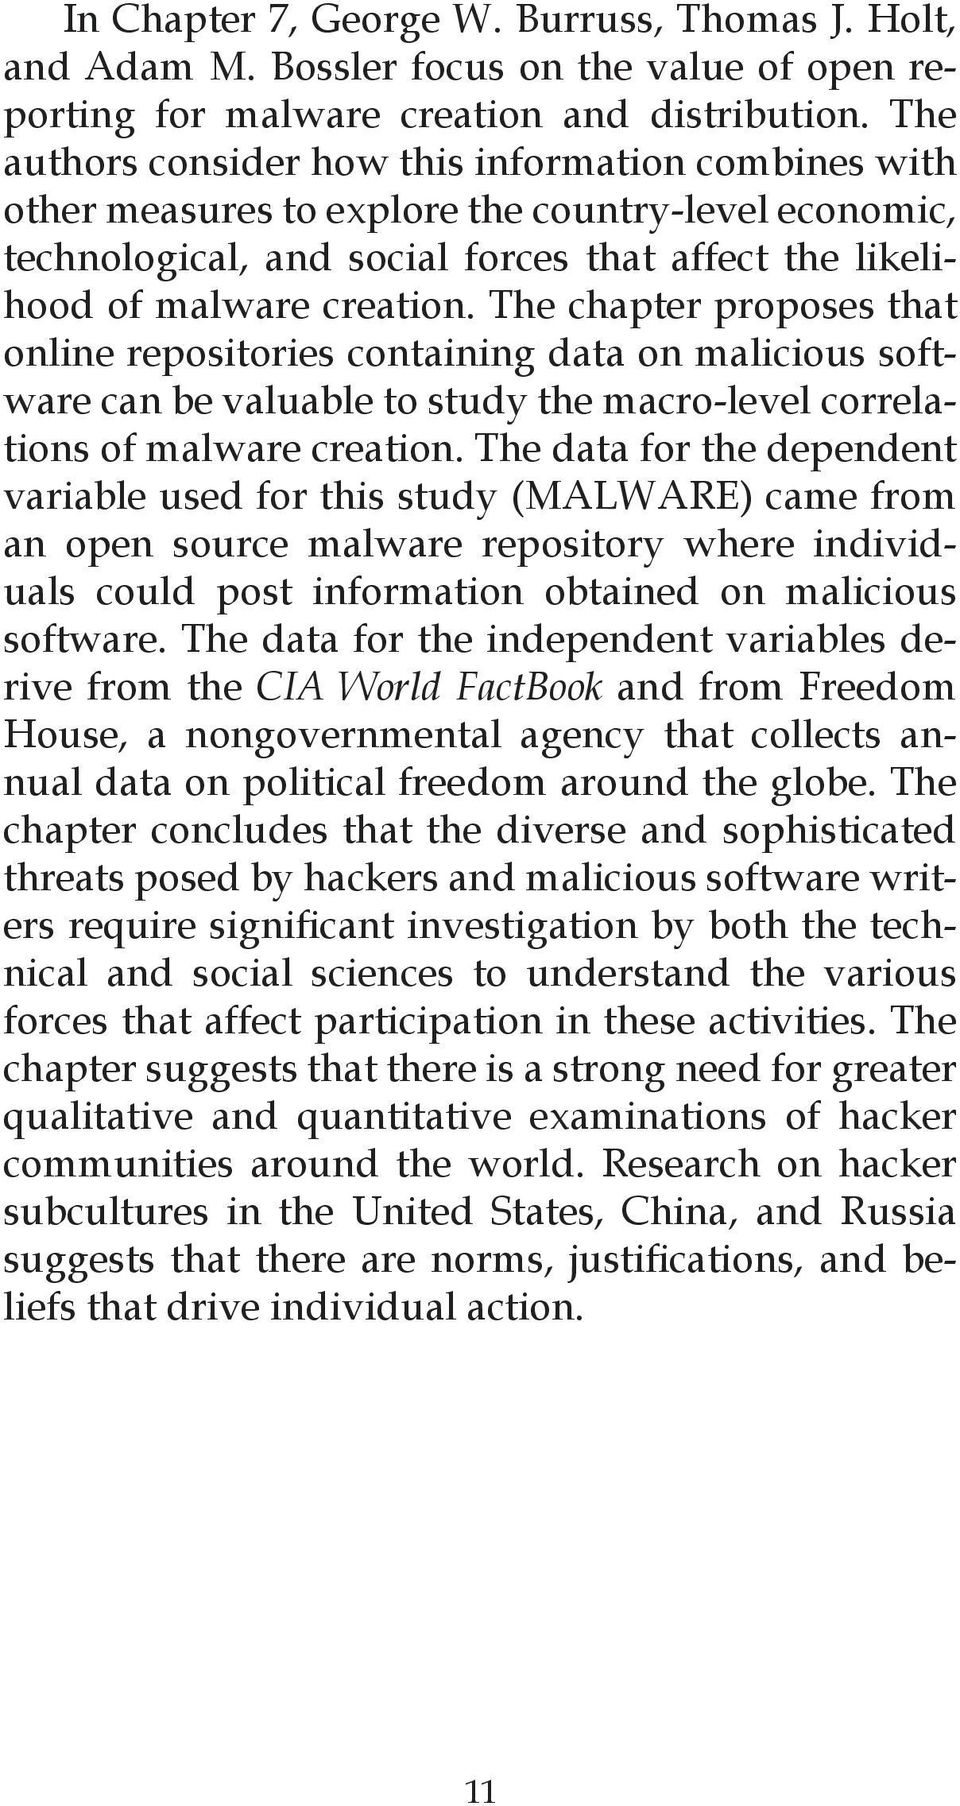 The chapter proposes that online repositories containing data on malicious software can be valuable to study the macro-level correlations of malware creation.